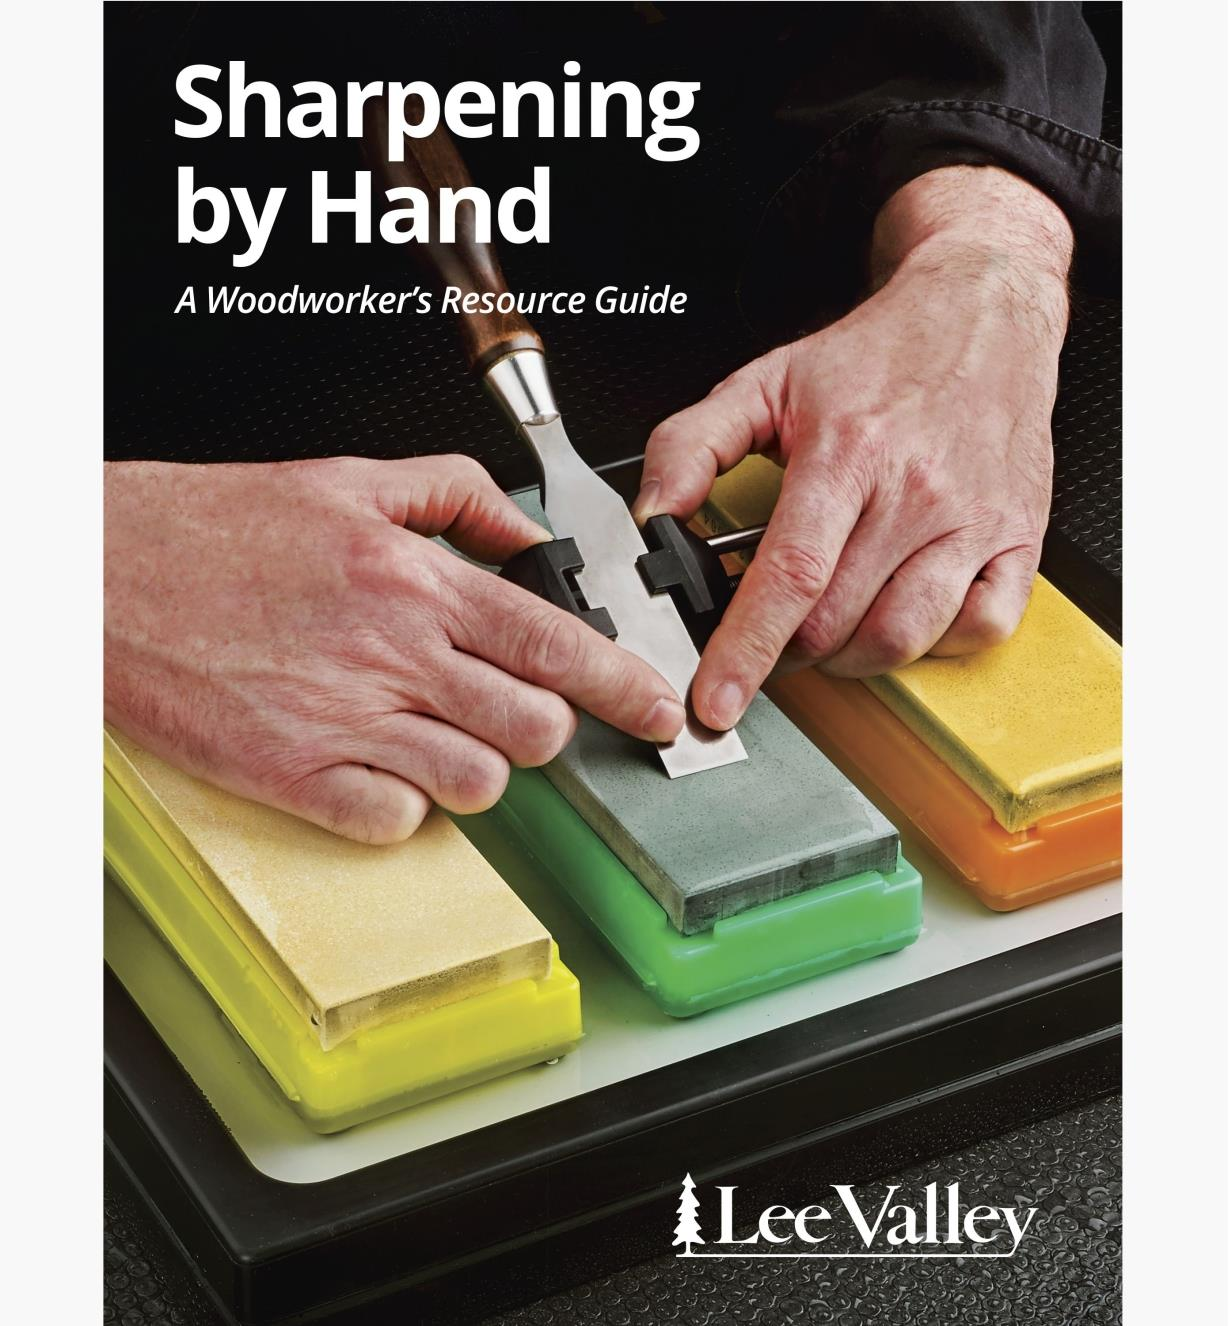 U0321SHA - Sharpening by Hand: A Woodworker's Resource Guide